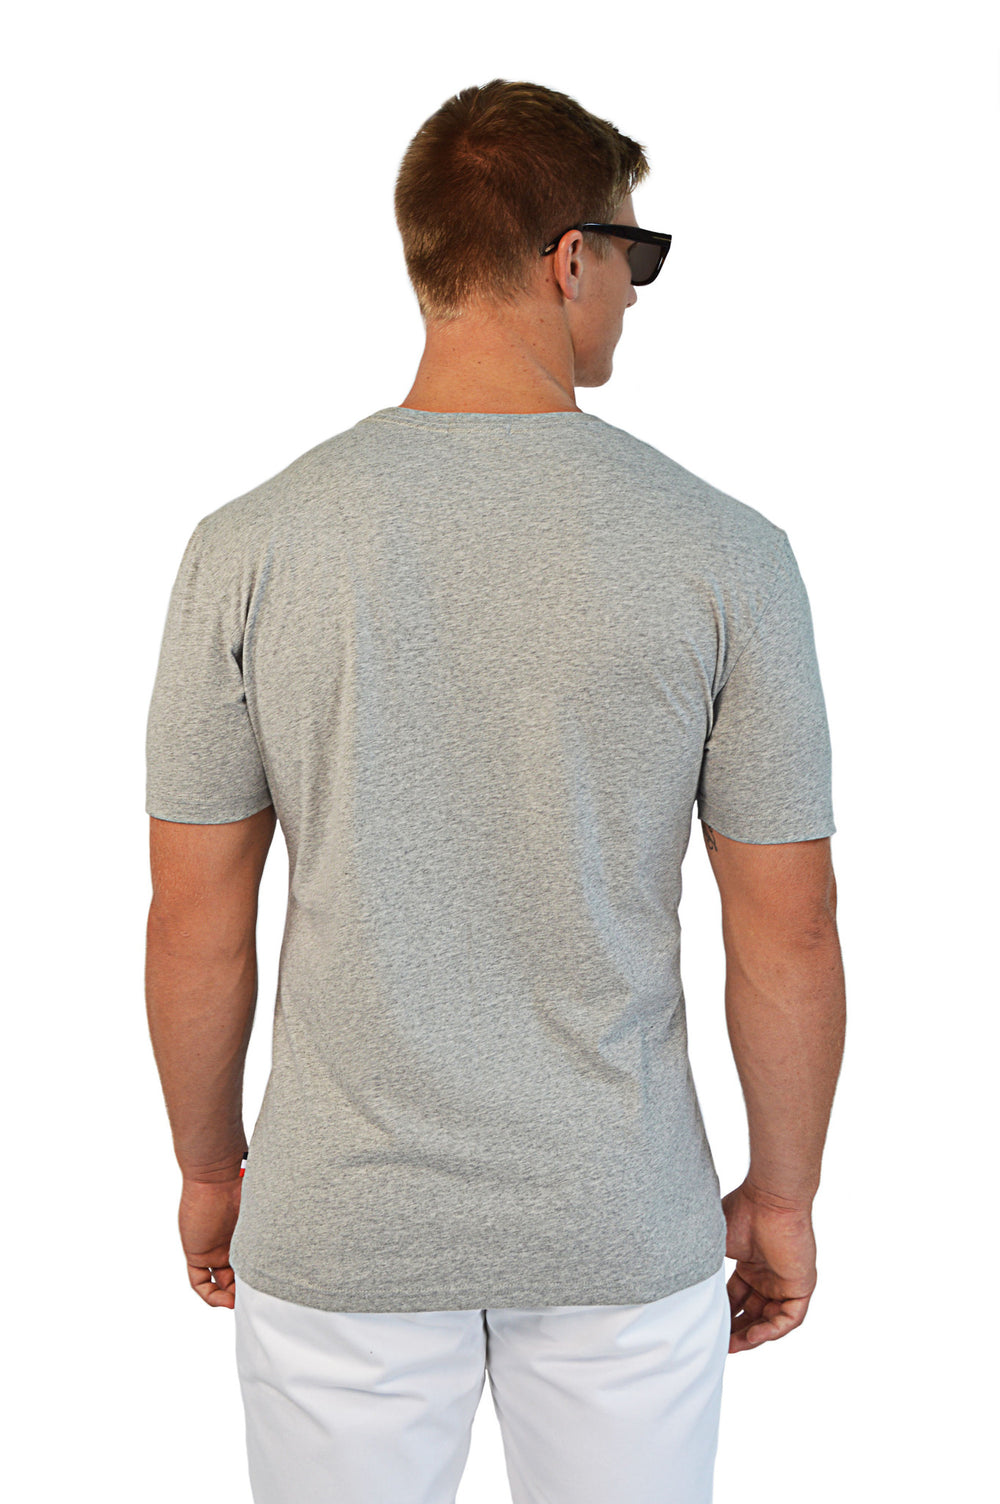 back view grey t-shirt